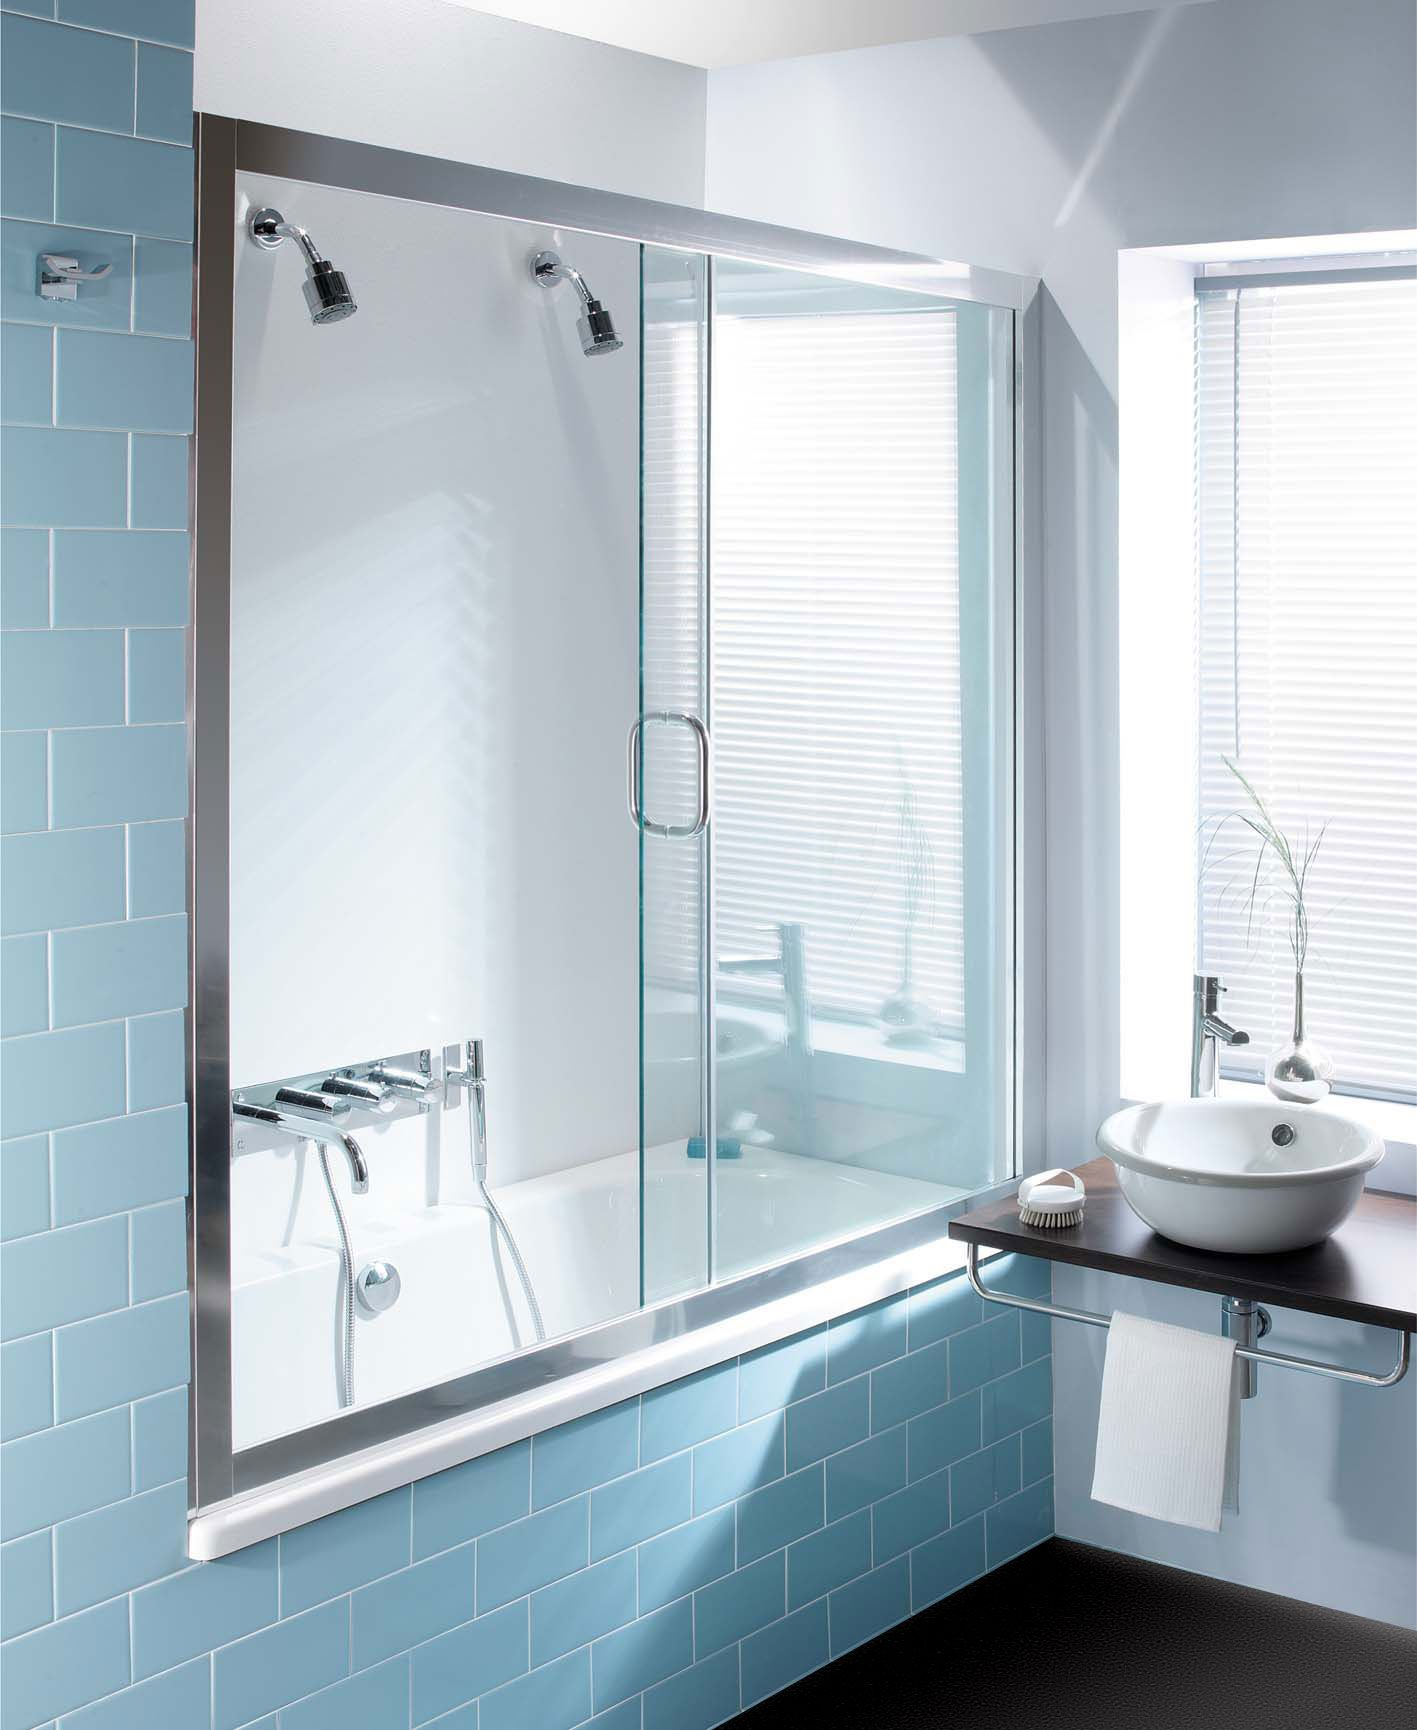 Tiles from £0.02 each! - Get this great value Light Blue Brick Tile ...